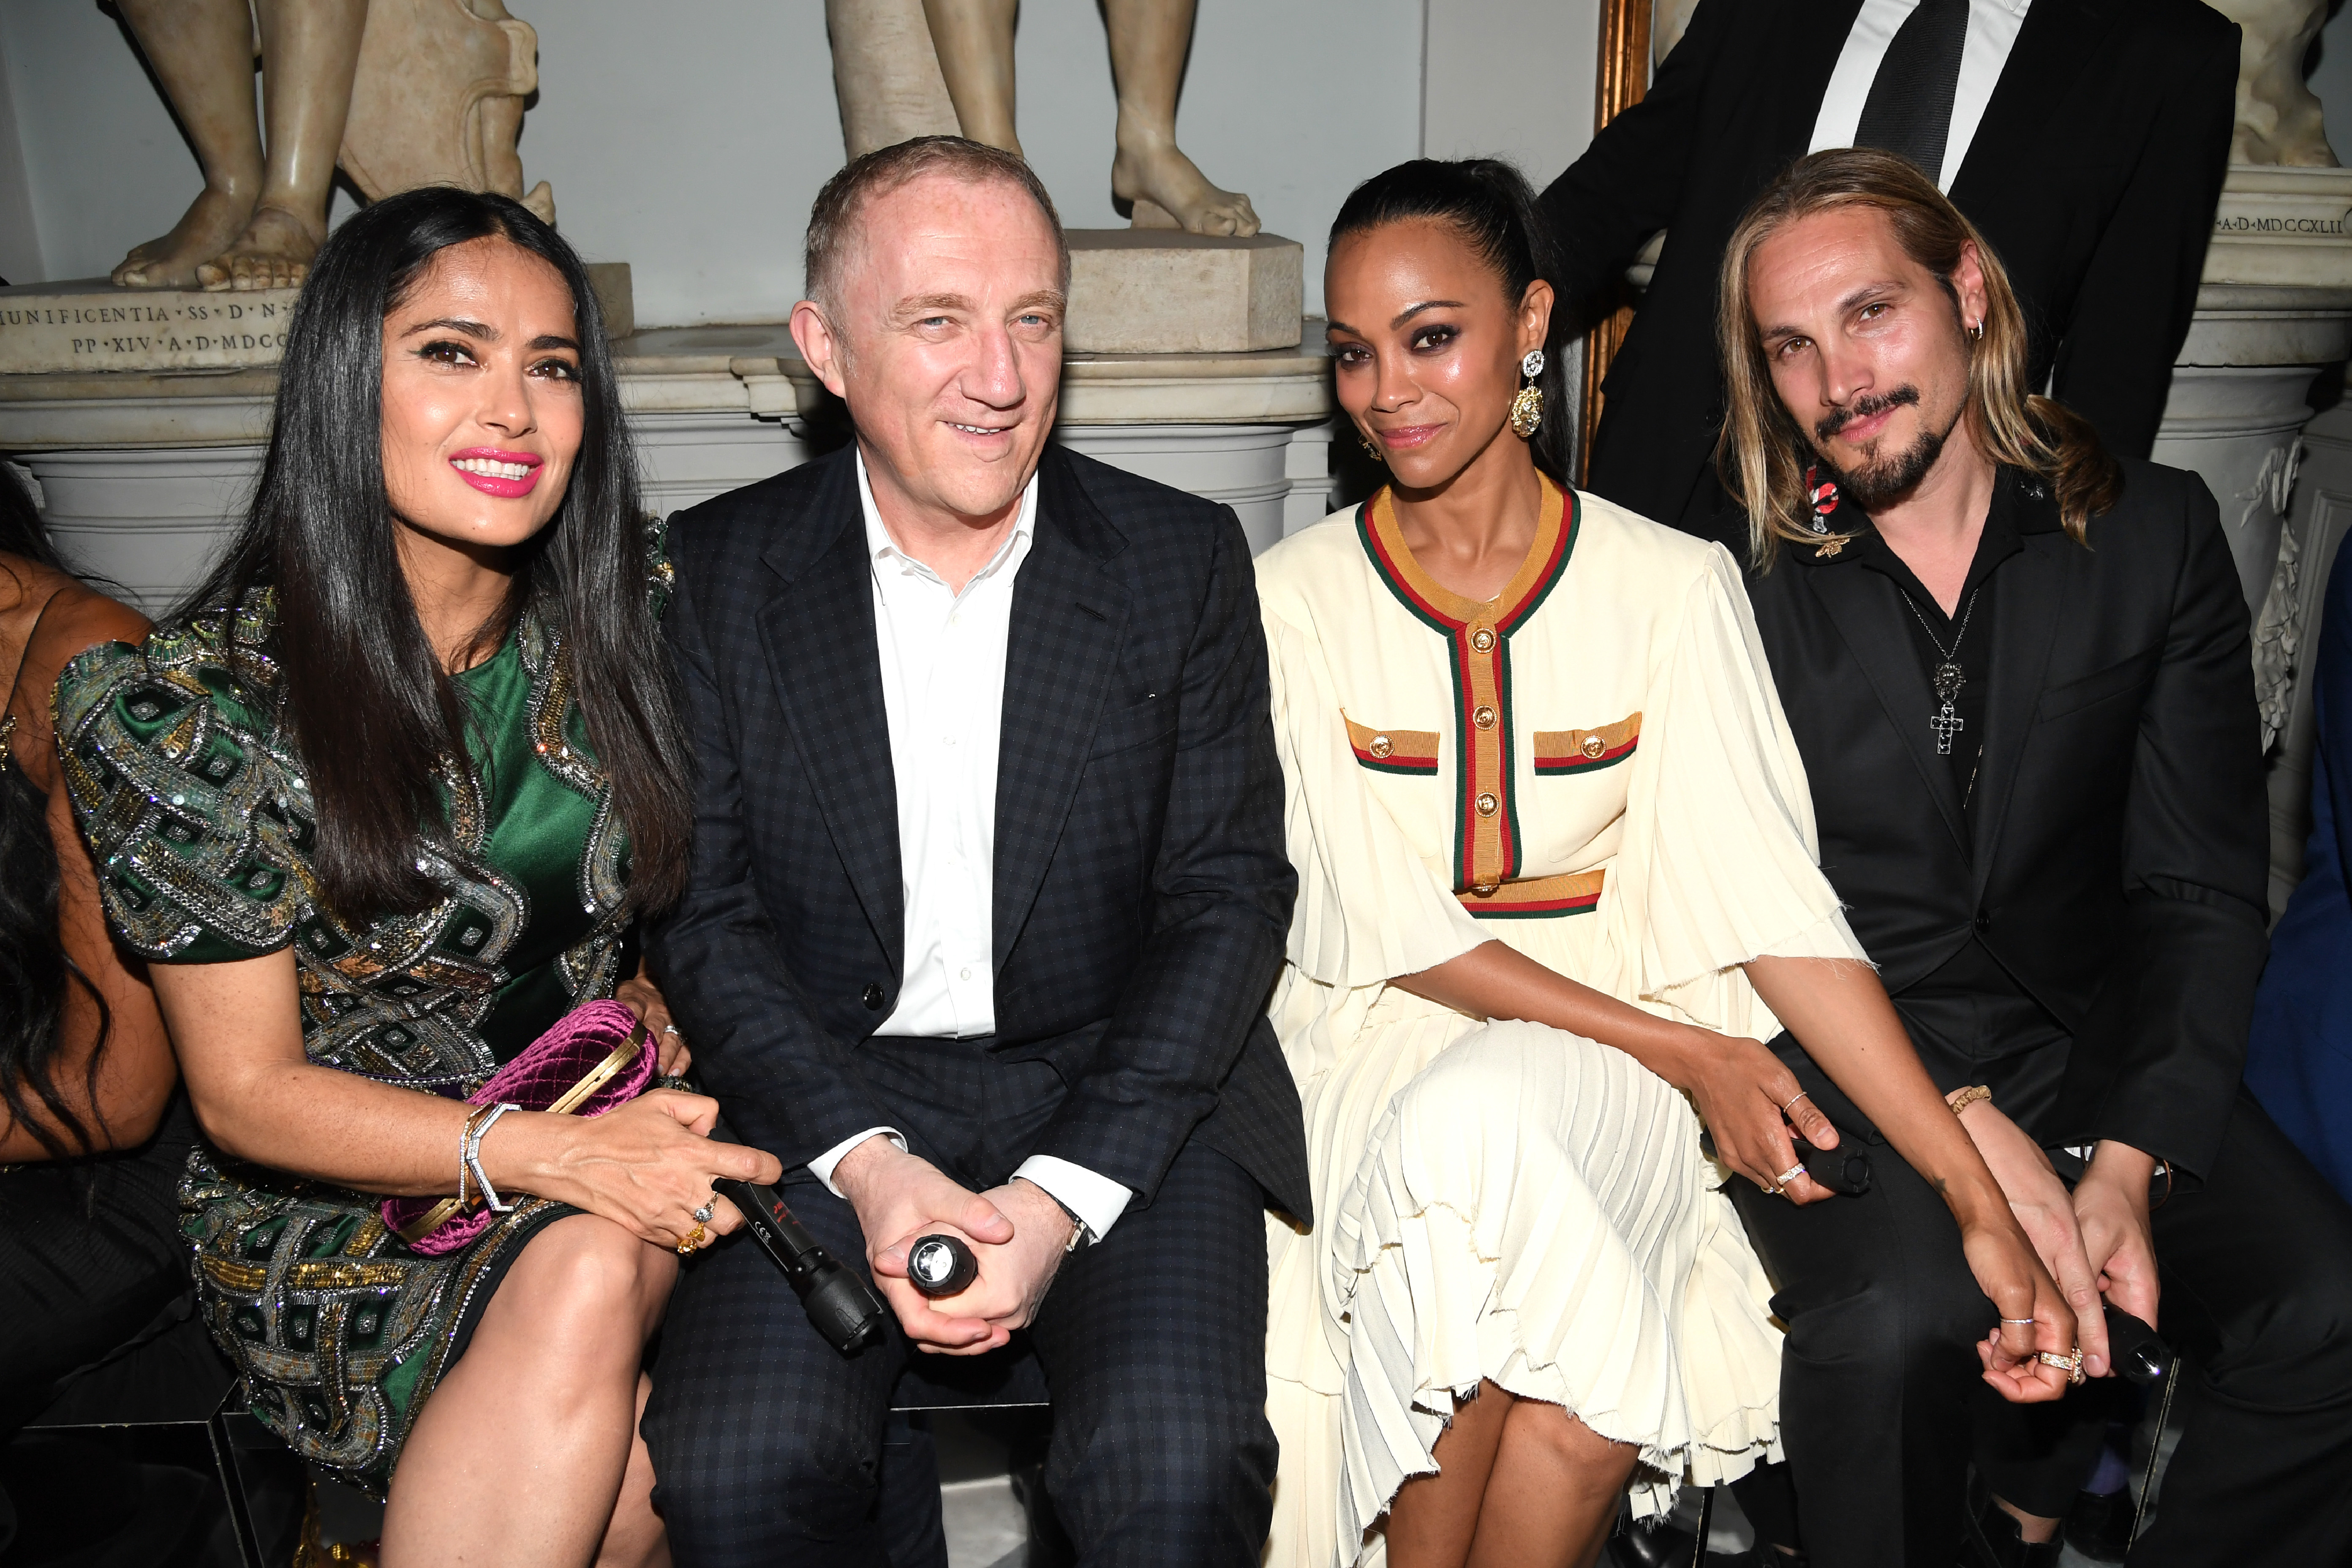 Salma Hayek, François Henri Pinault, Zoe Saldana and Marco Perego attend Gucci Cruise 2020 at Musei Capitolini in Rome, Italy, on May 28, 2019.